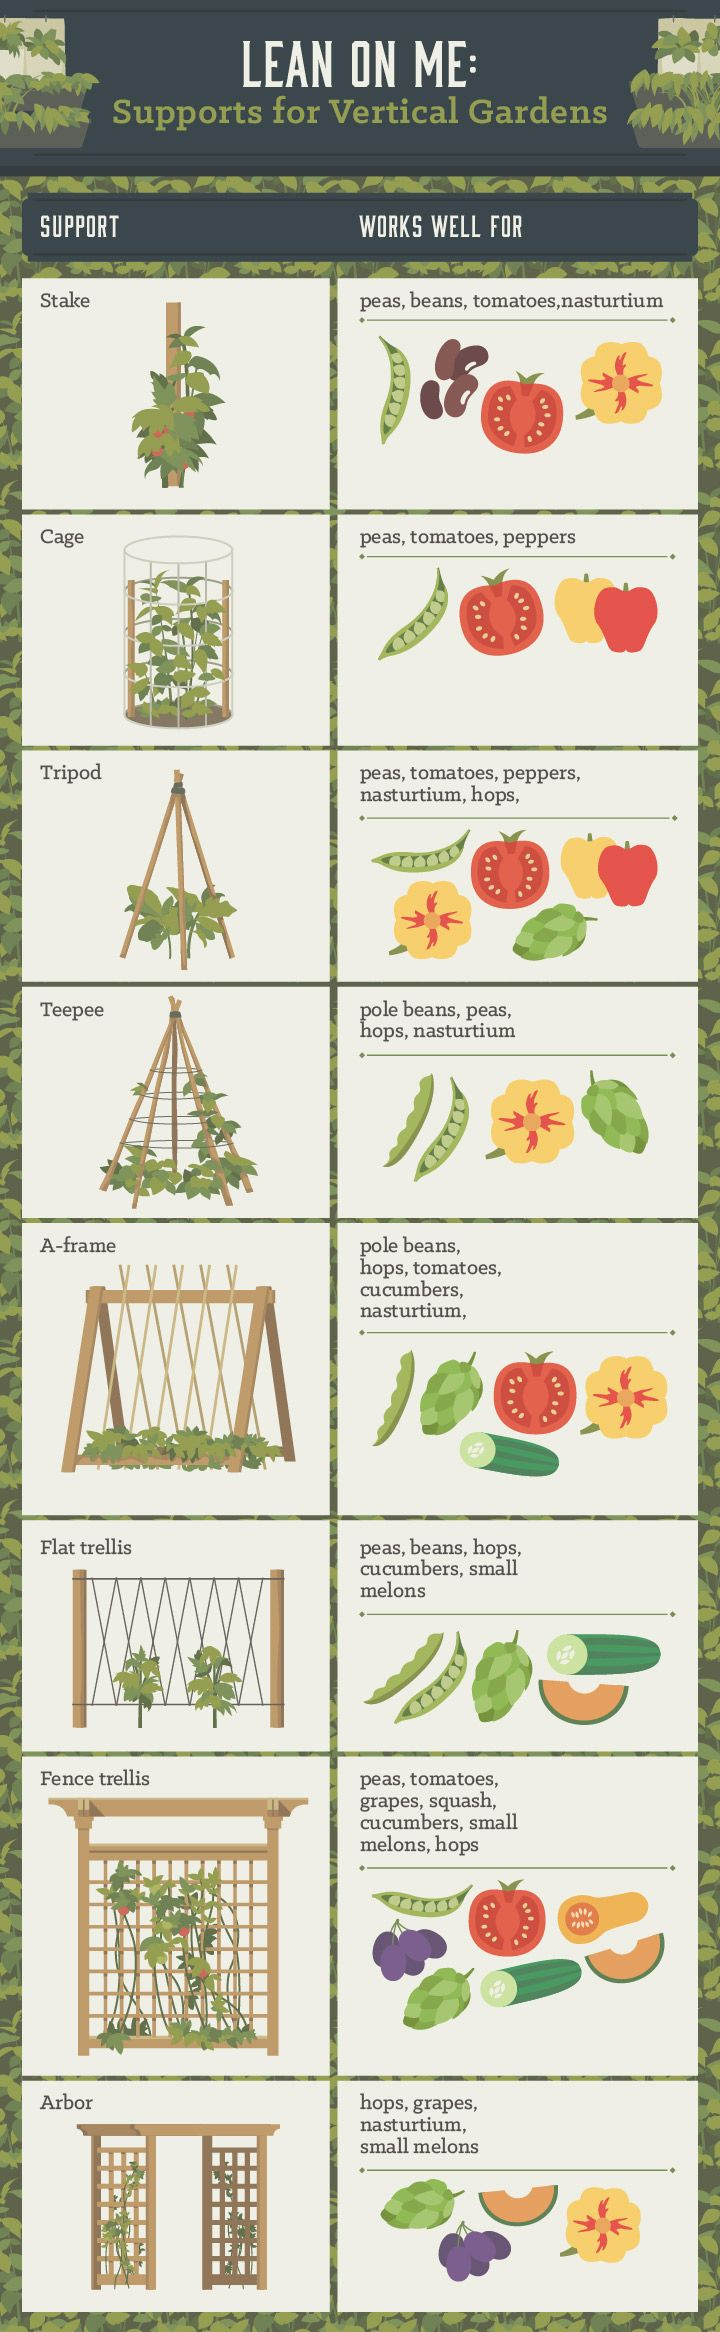 Save Gardening Space by Growing Vertically Up Homesteading - The Homestead Survival .Com